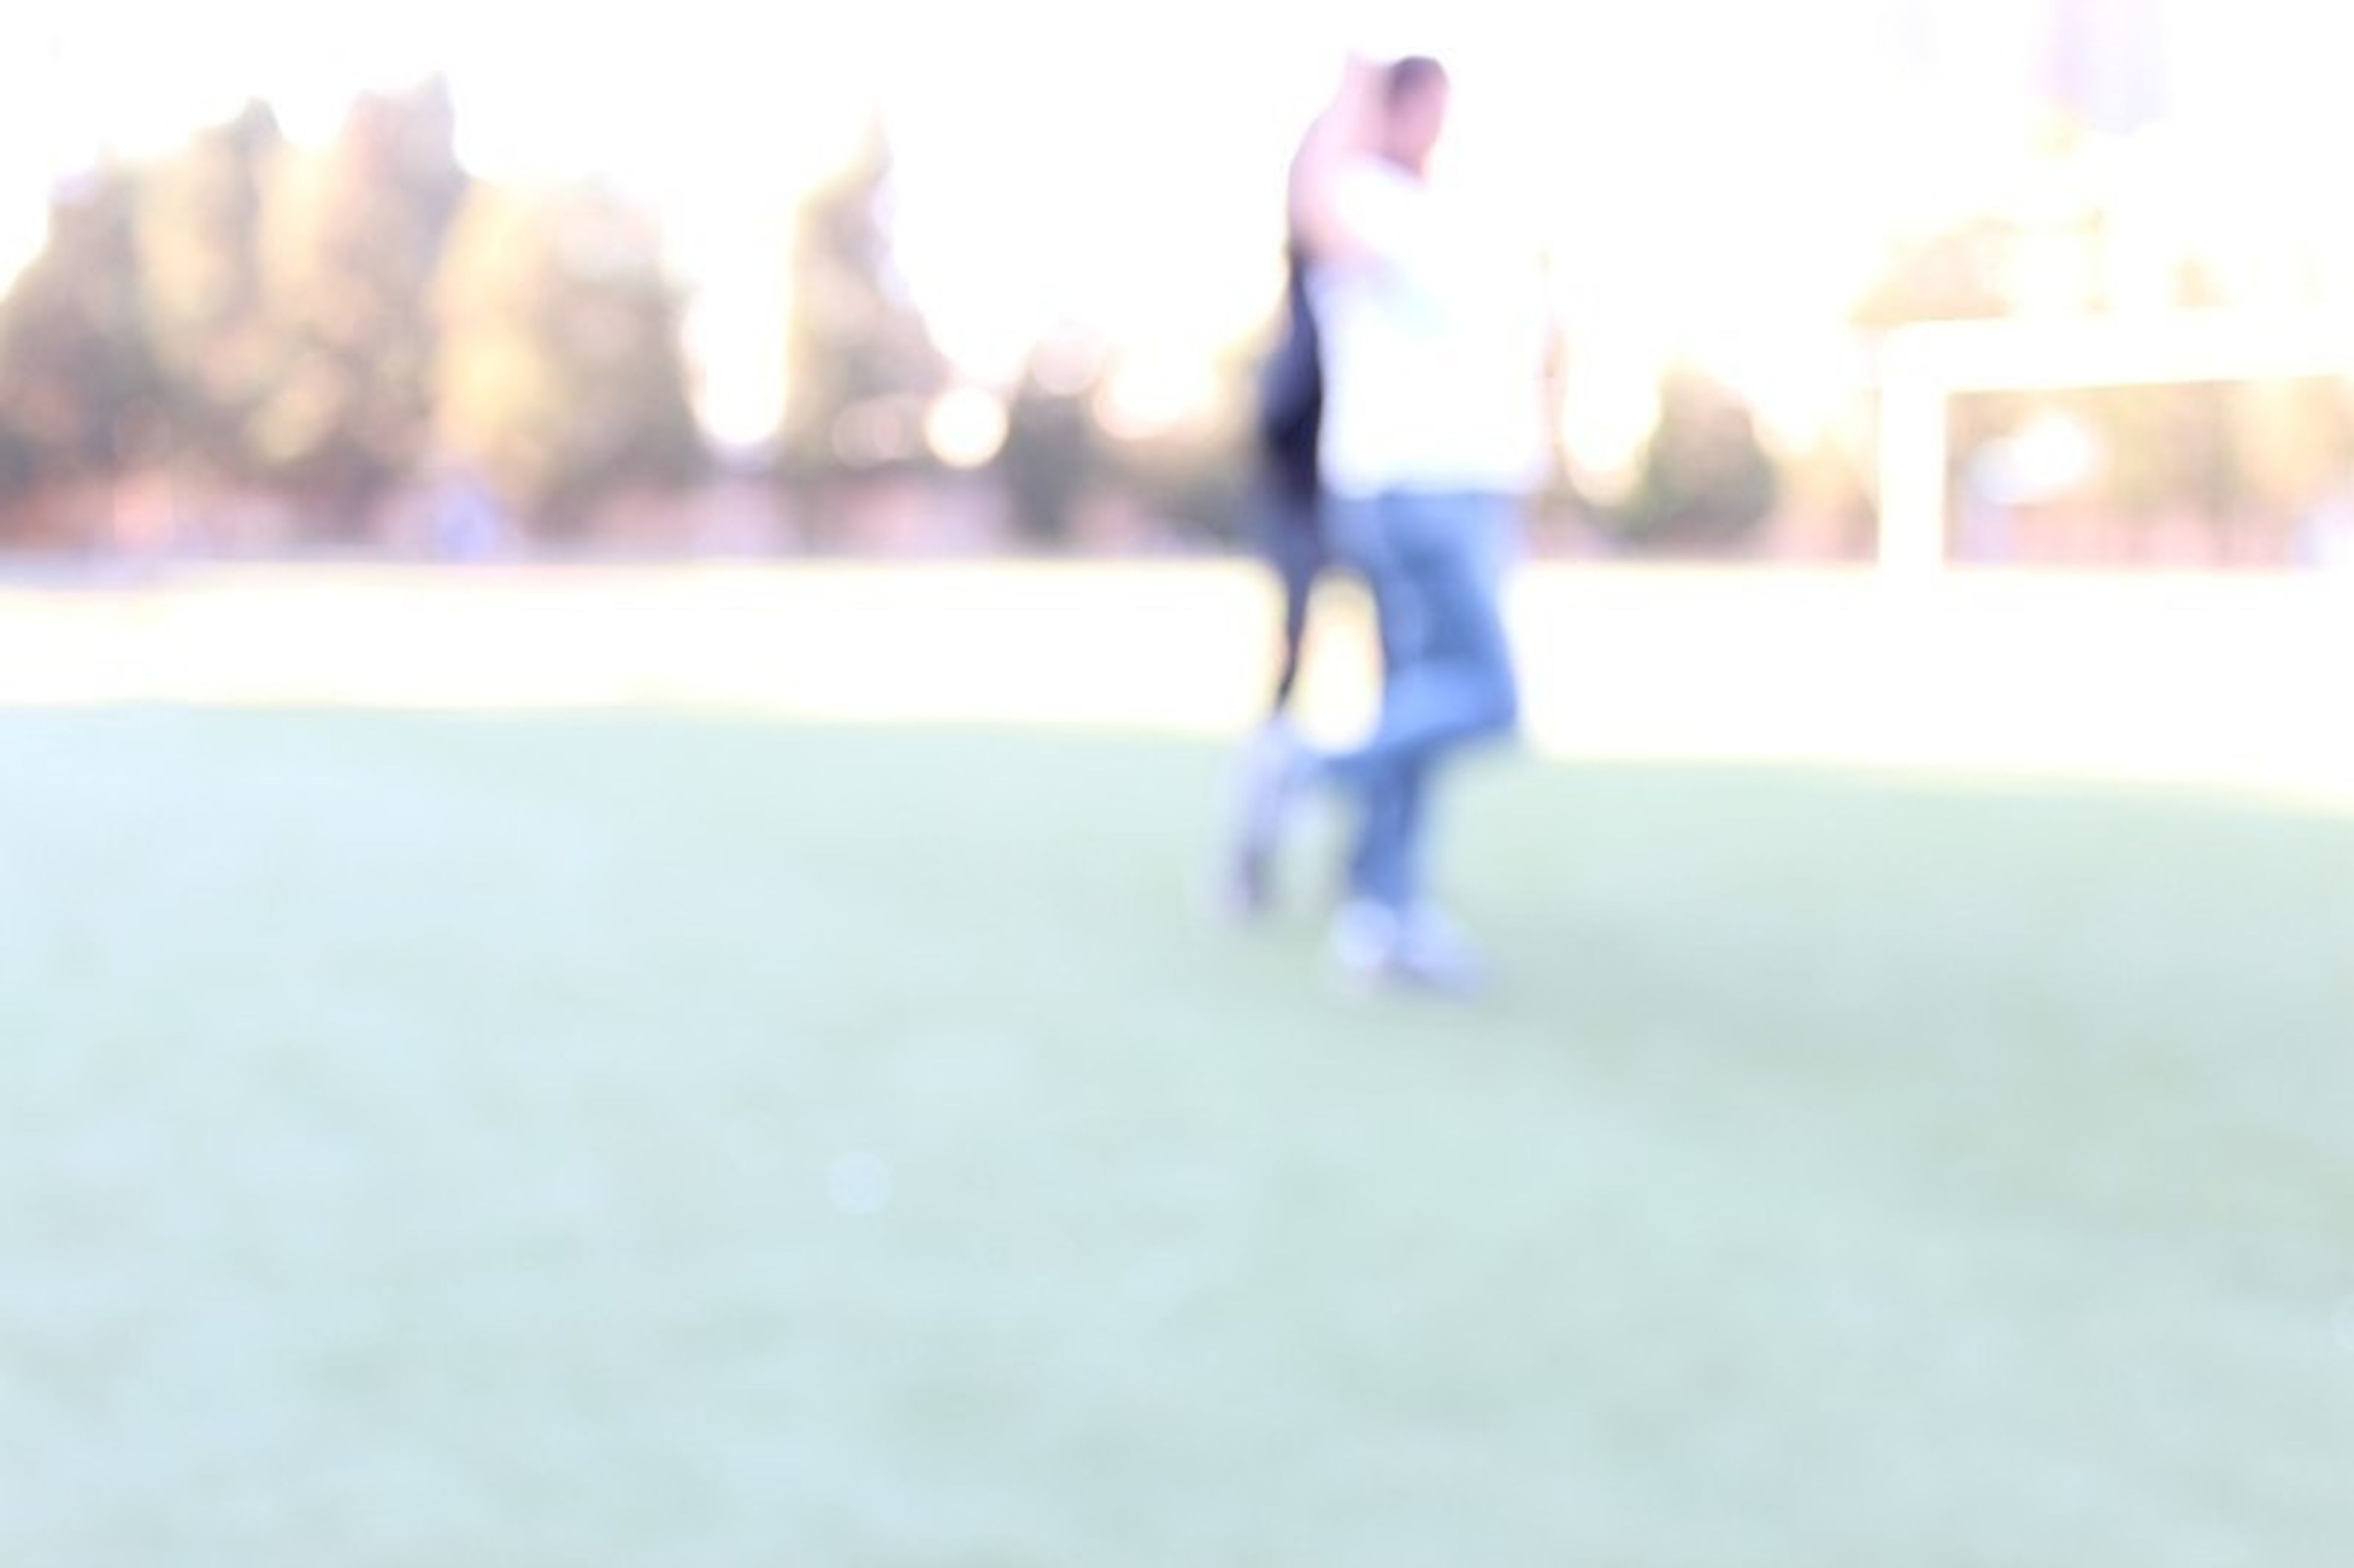 lifestyles, focus on foreground, selective focus, leisure activity, walking, men, person, rear view, standing, surface level, day, defocused, outdoors, unrecognizable person, low section, casual clothing, sunlight